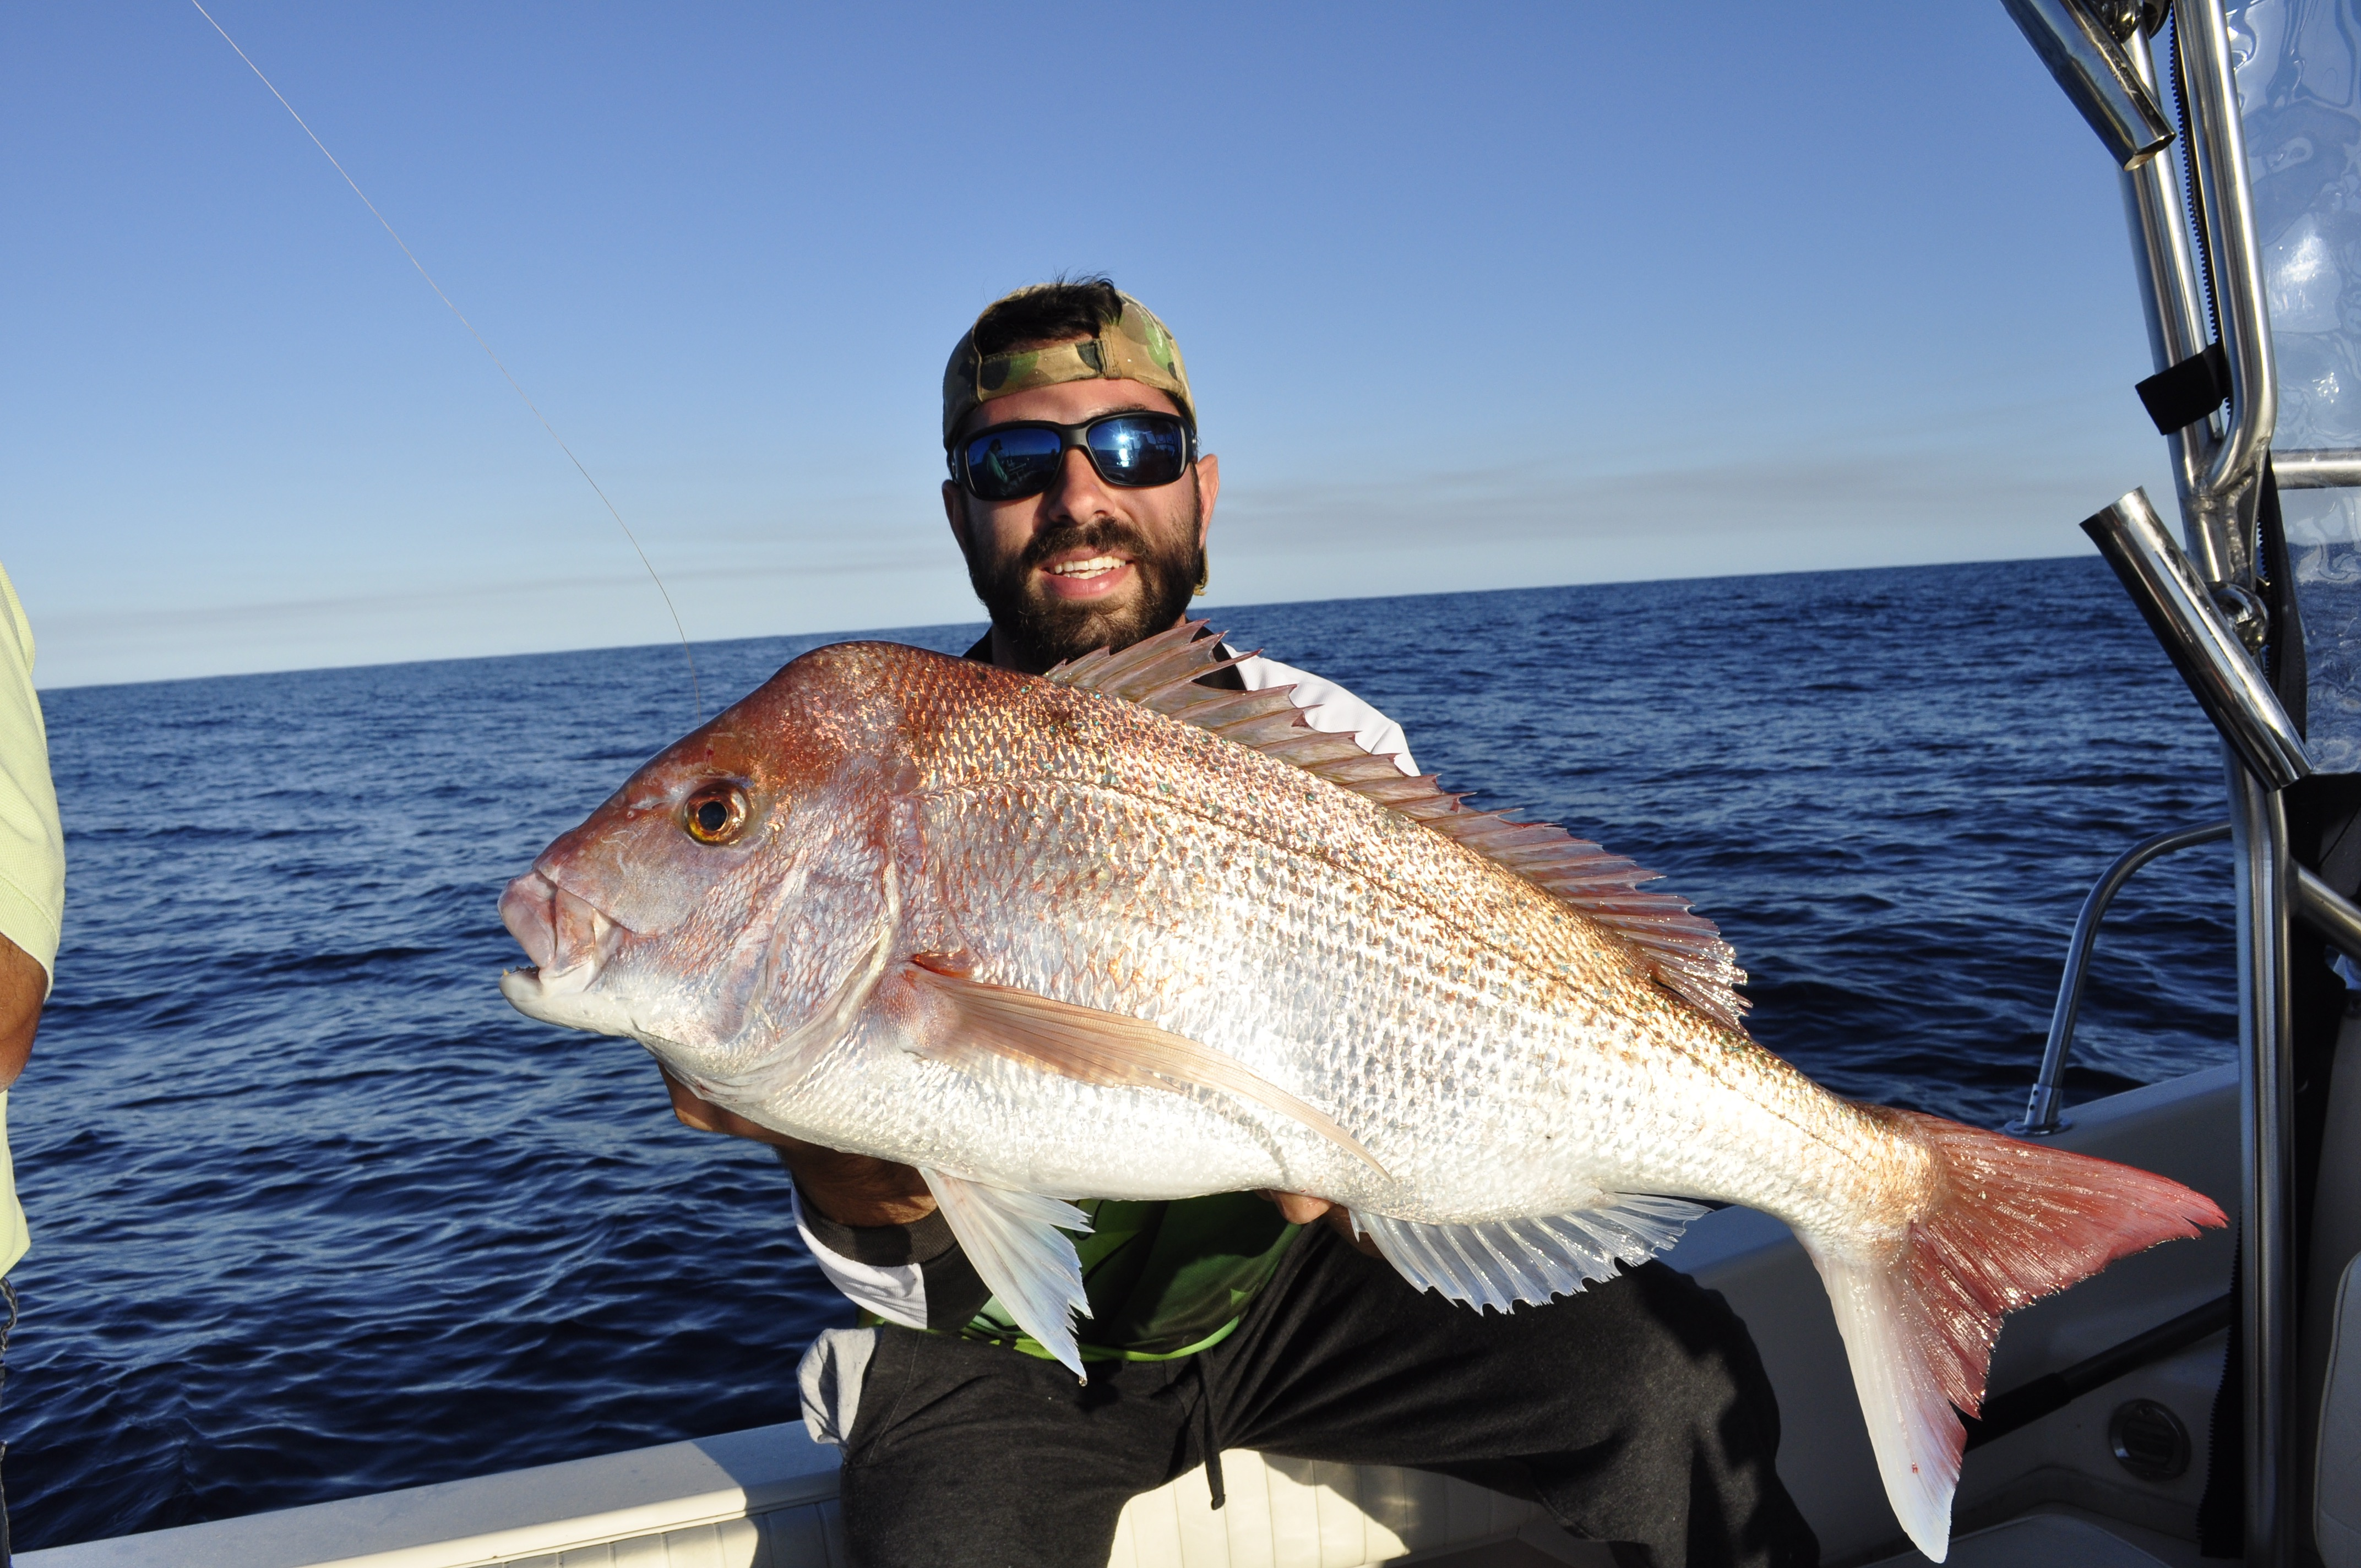 Peter with a quality snapper that fell to a float line rig.